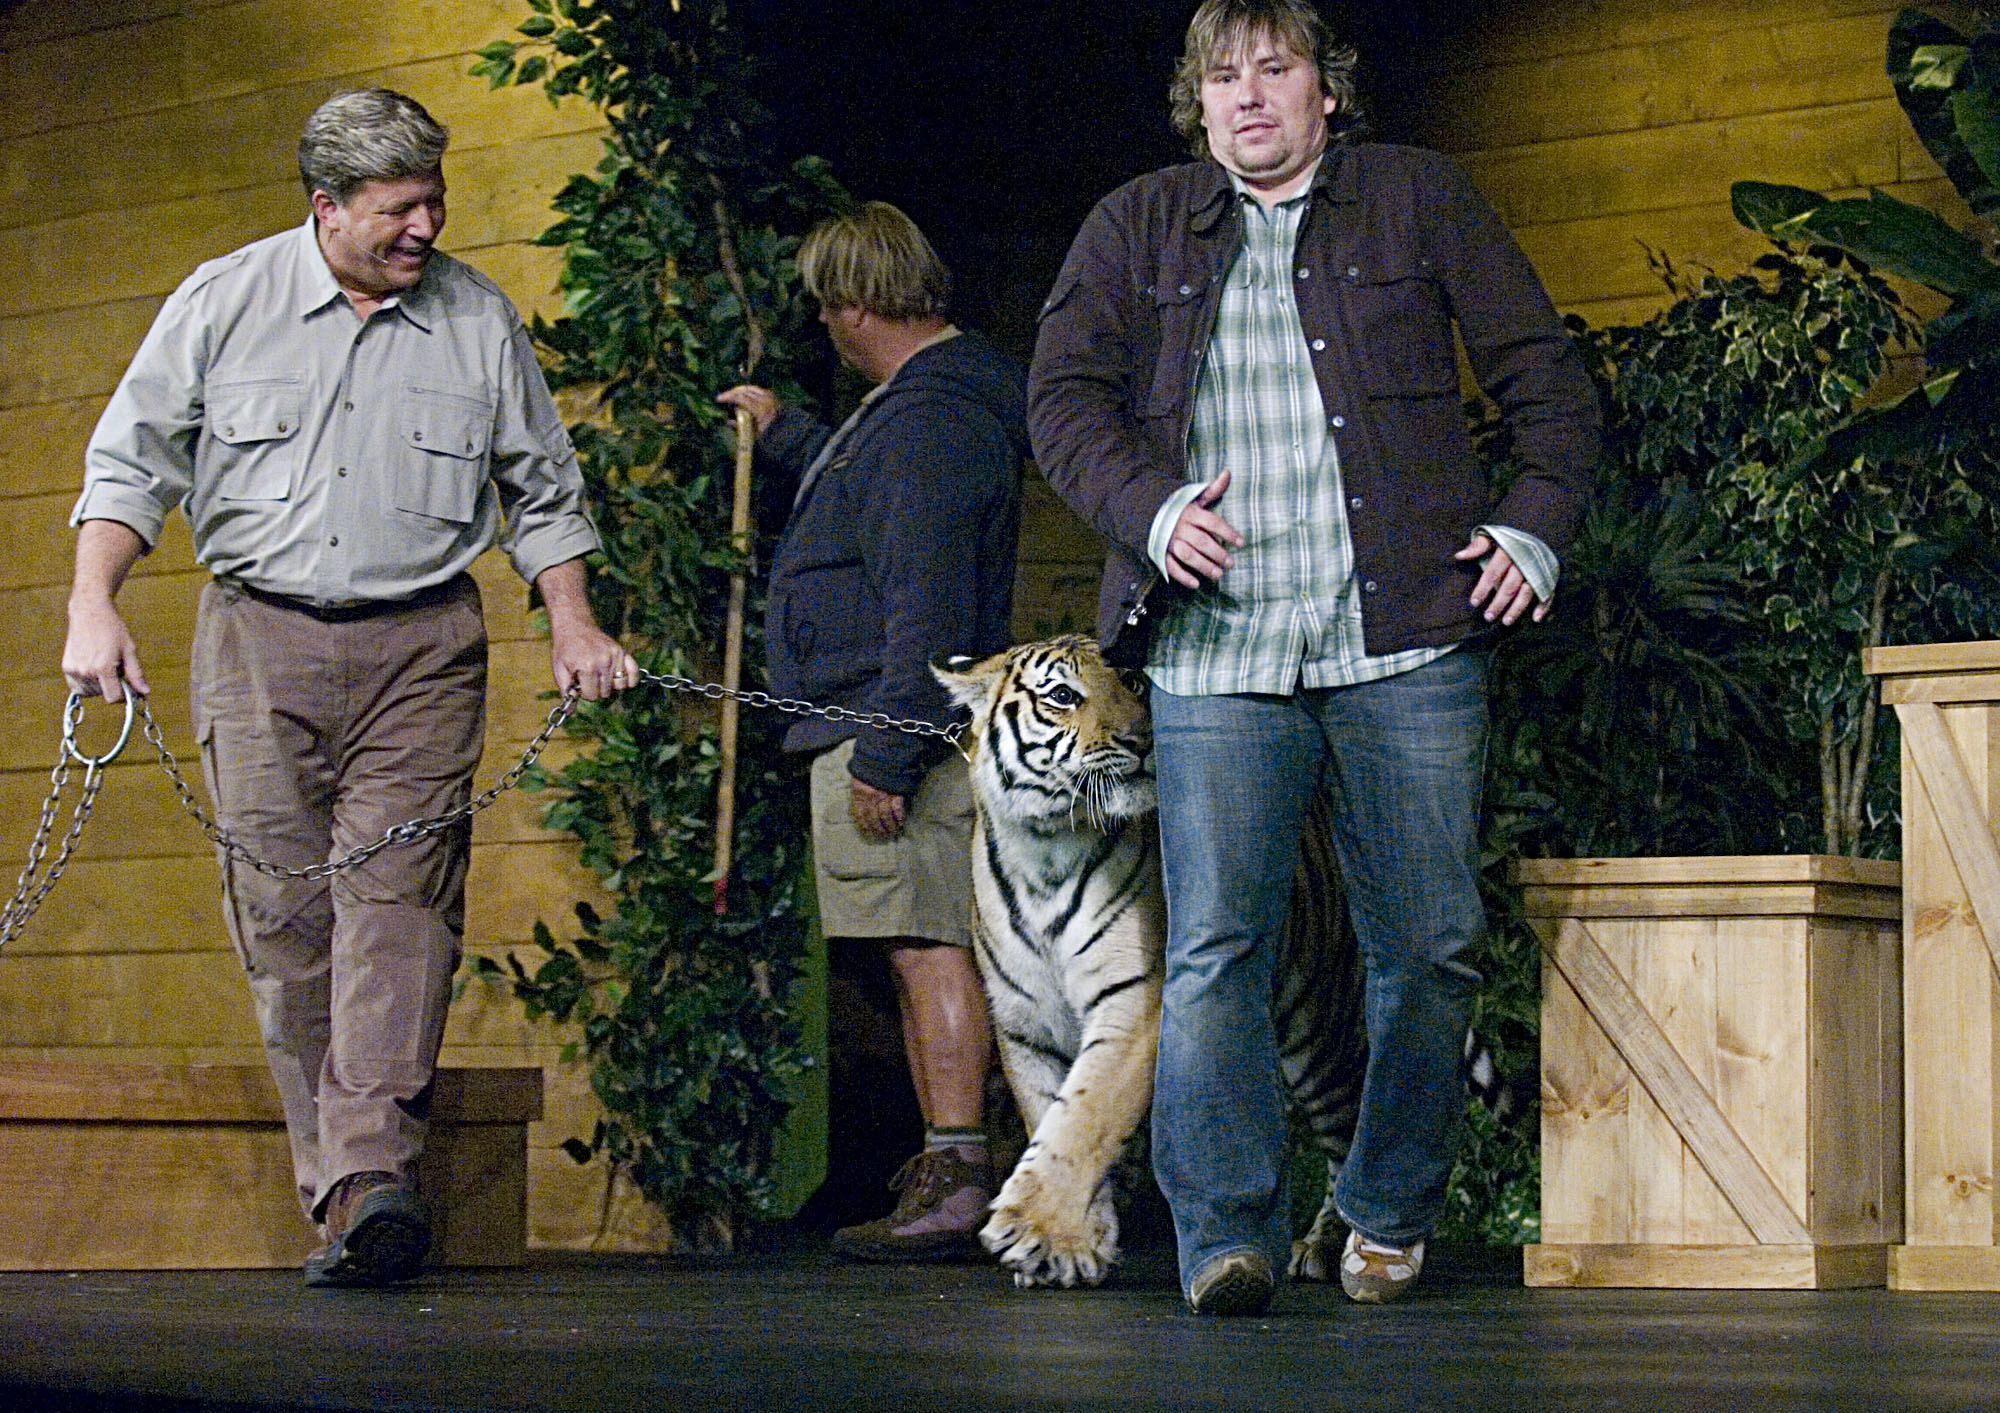 Part 3: 'Can't have two tigers on the hill' « Special Projects